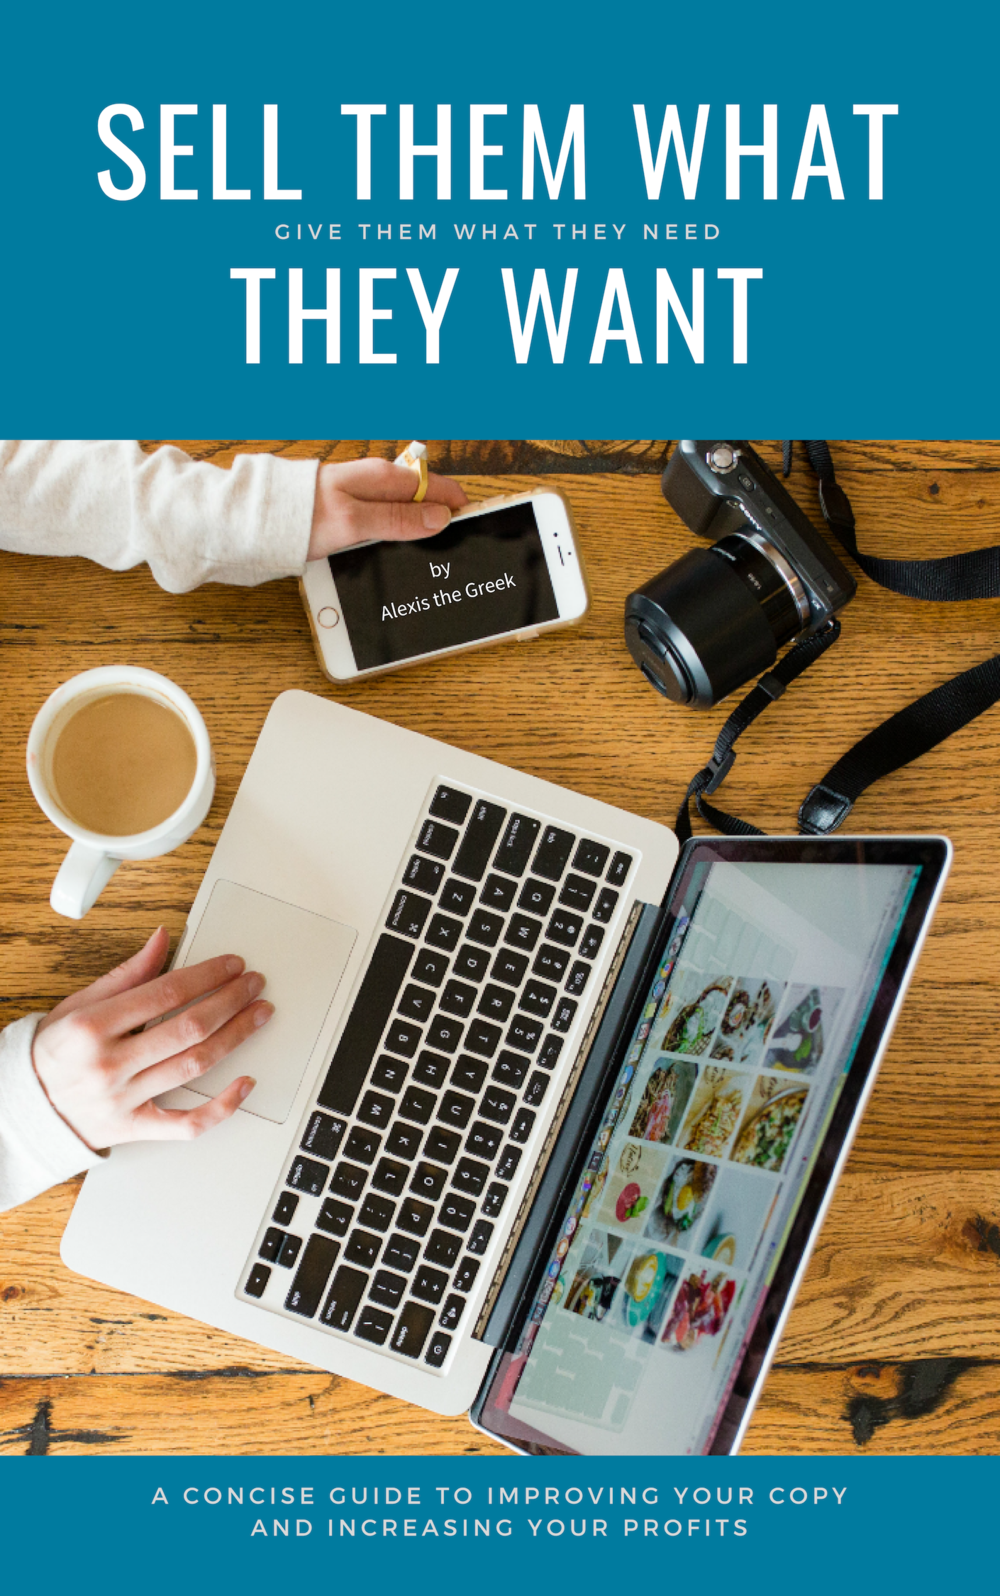 Sell Them What They Want book cover.png